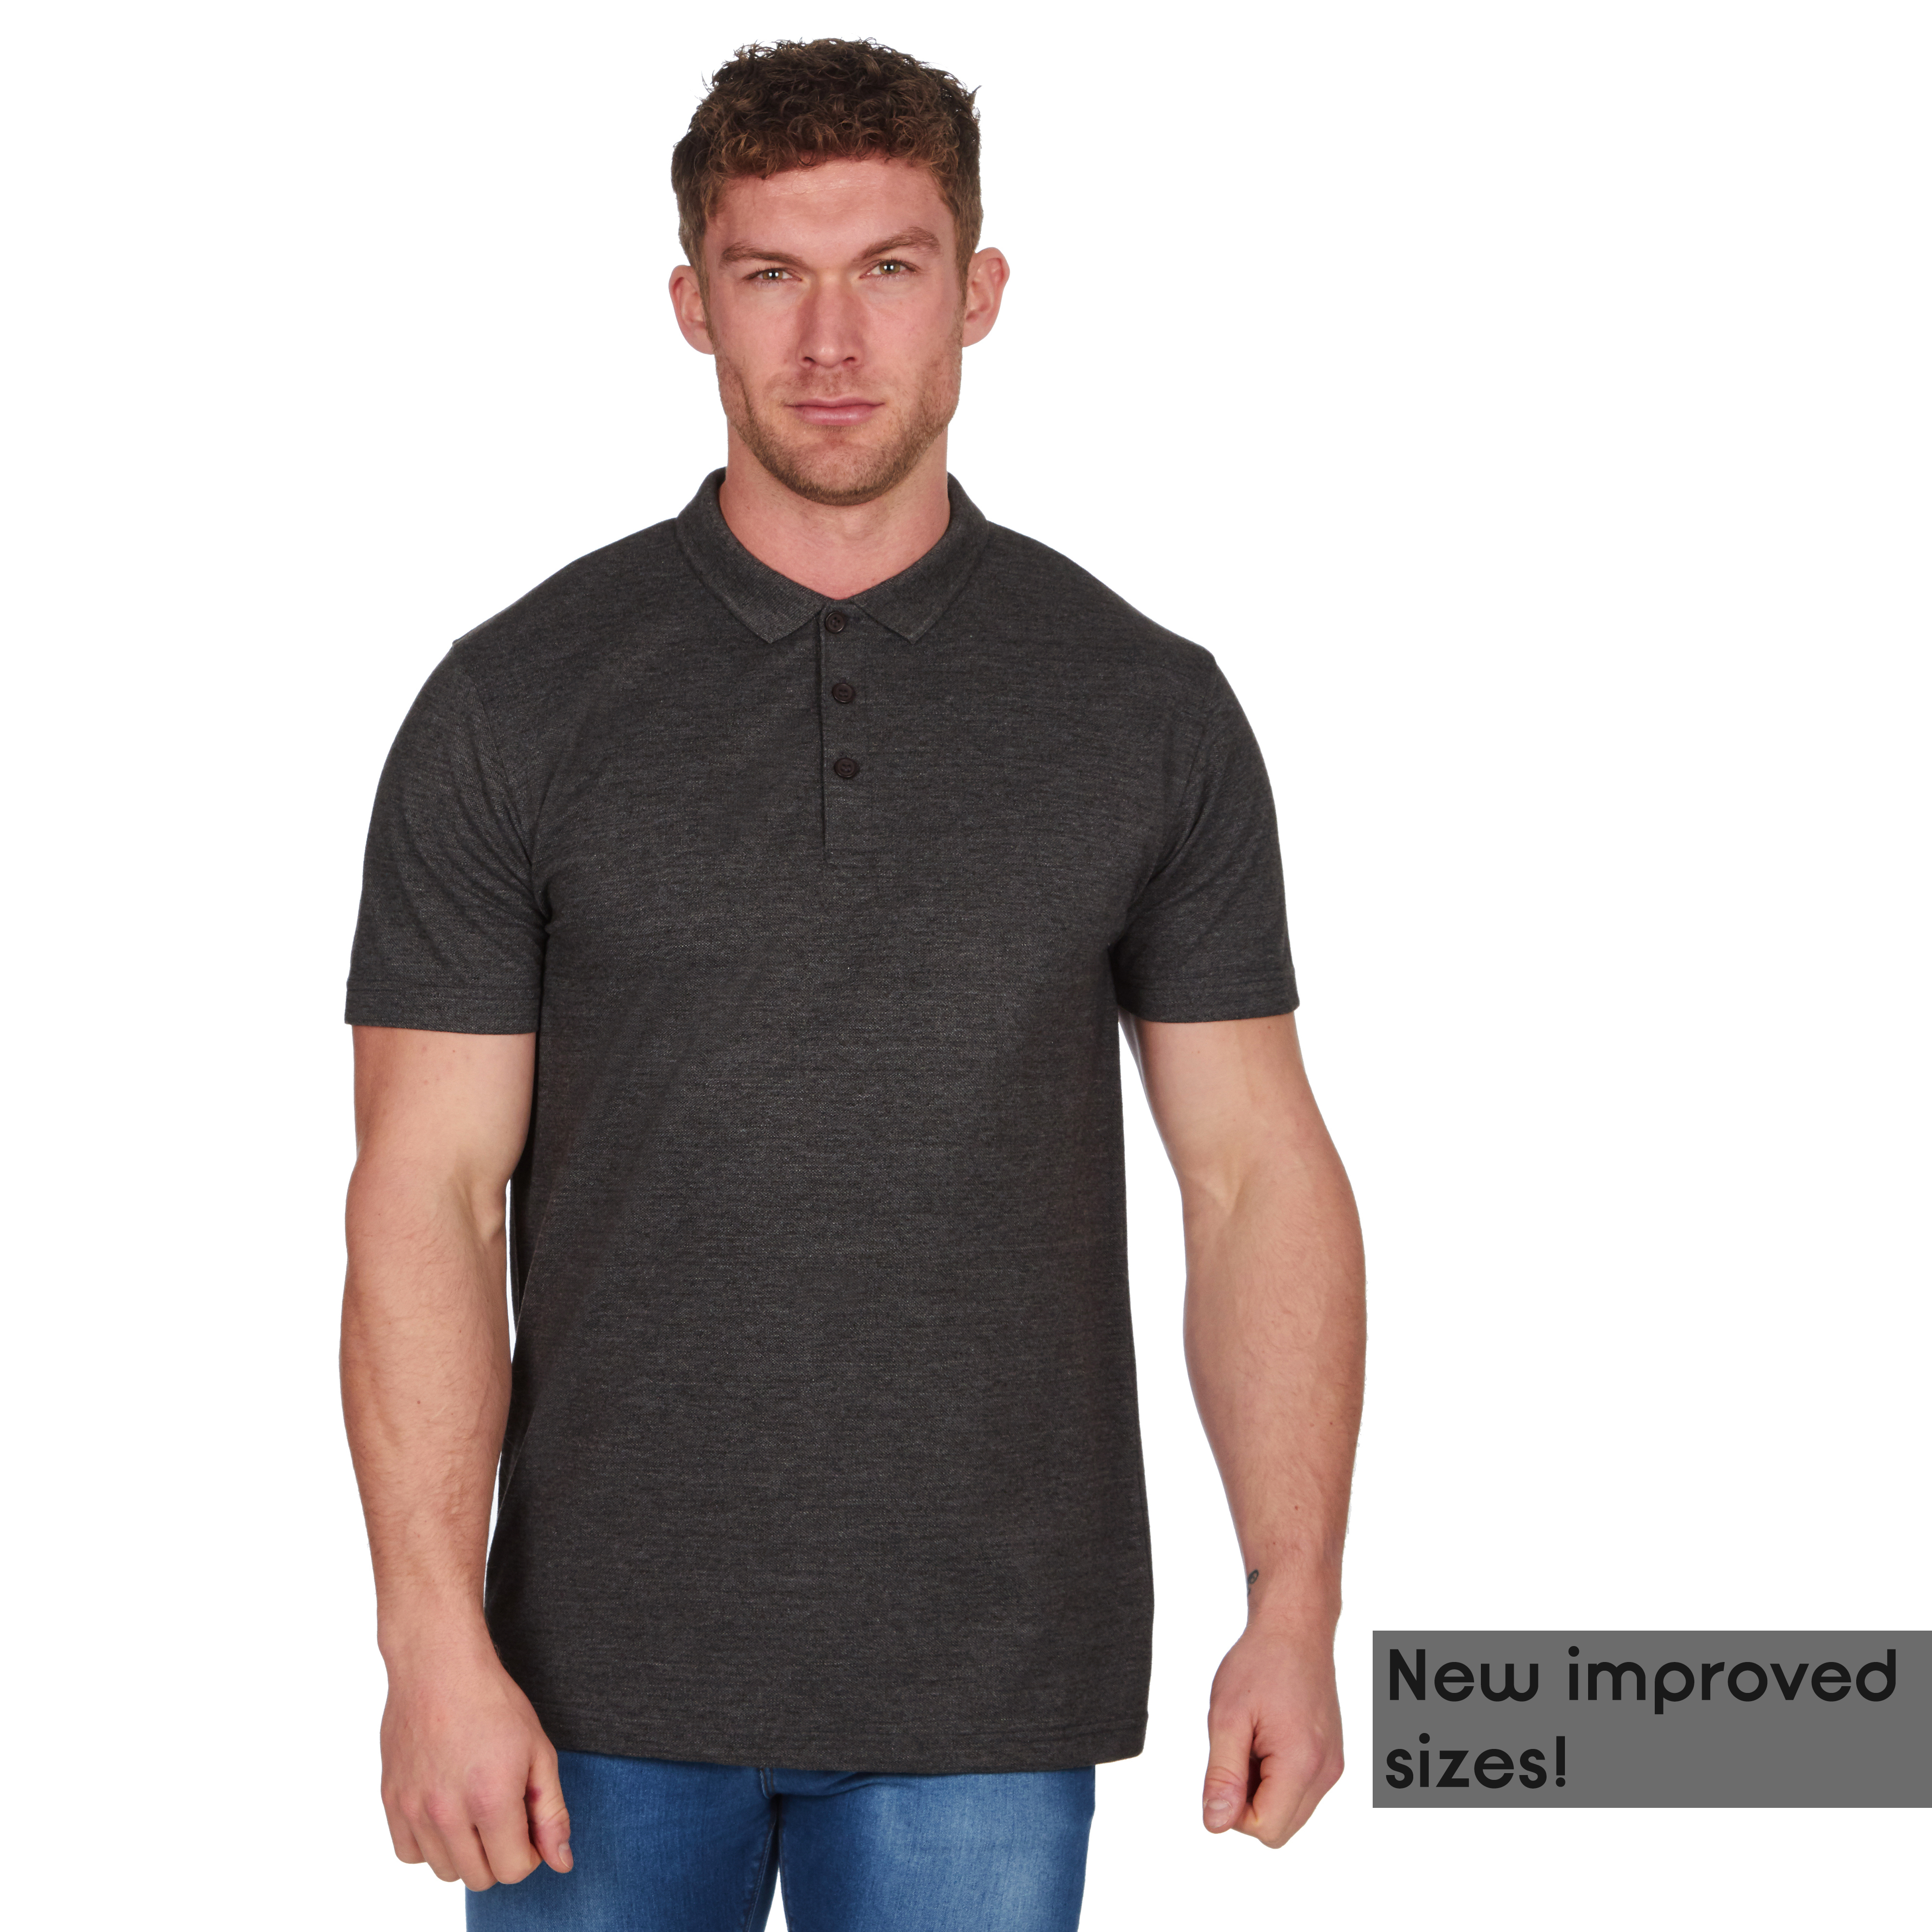 Mens-Classic-Polo-Top-Plus-Size-T-Shirt-Plain-Shirt-Big-And-Tall-Short-Sleeve thumbnail 19